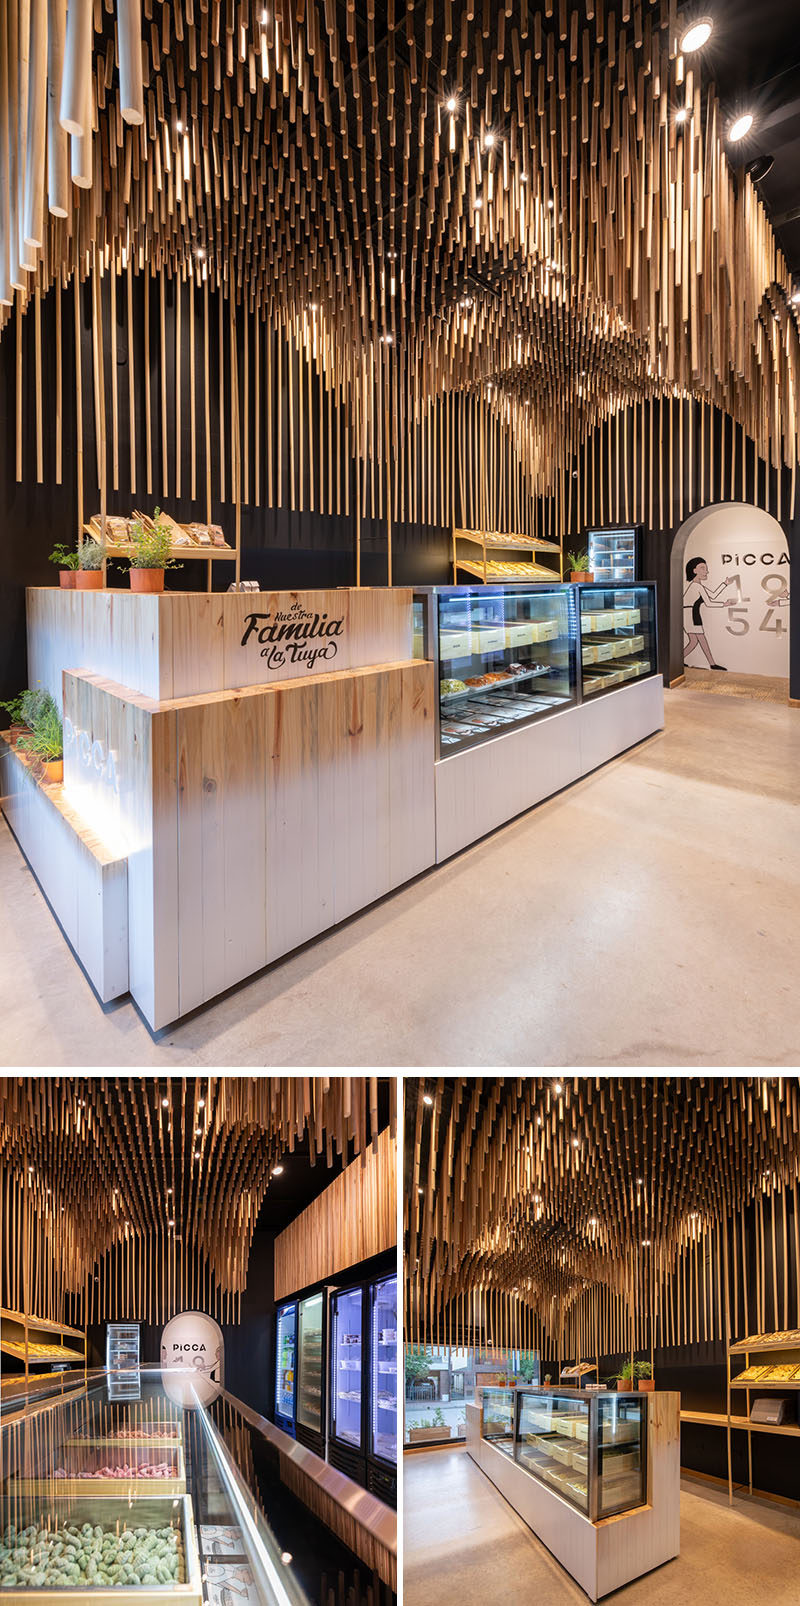 This modern retail store features 1954 broomsticks (commemorating the year of the founding of the family business), that were used to create a sculptural wood ceiling installation. #ModernRetailStore #StoreDesign #WoodCeiling